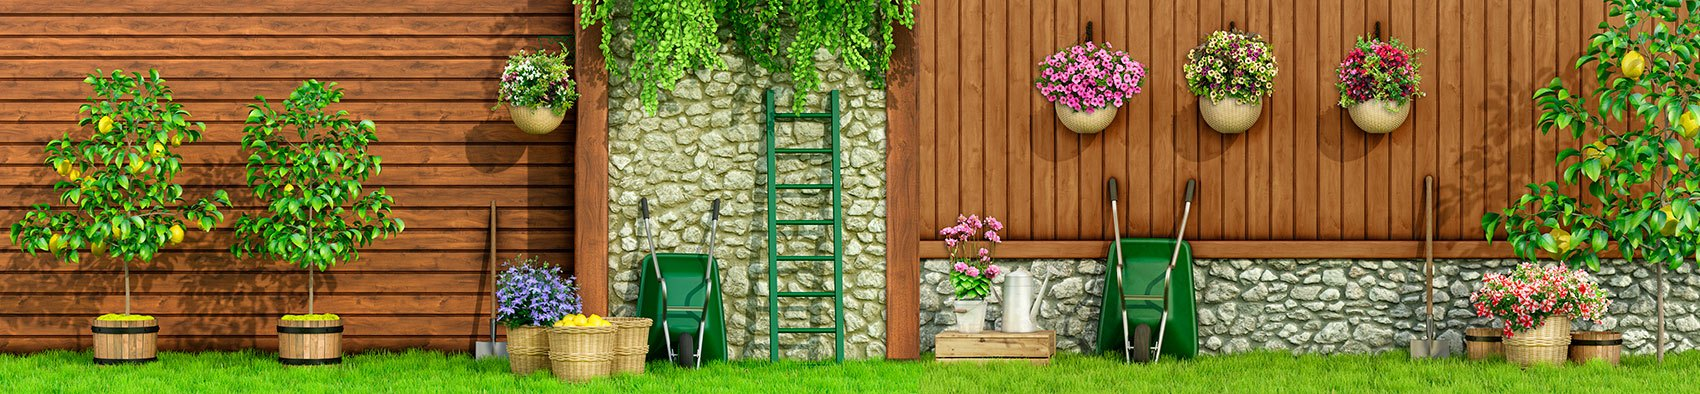 Wall Murals: Gardening Day